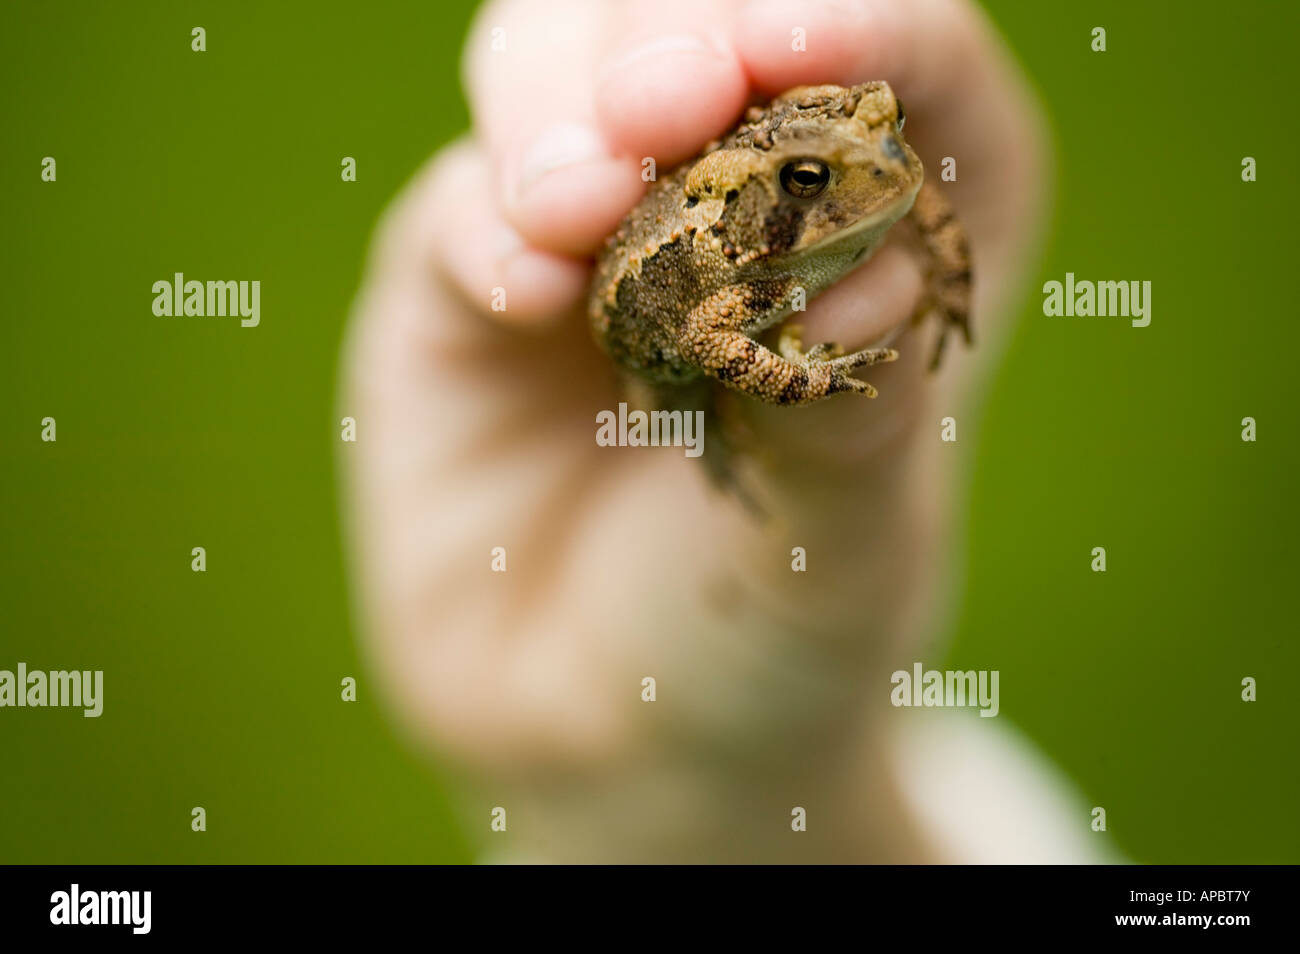 child holds frog or toad in her hand - Stock Image